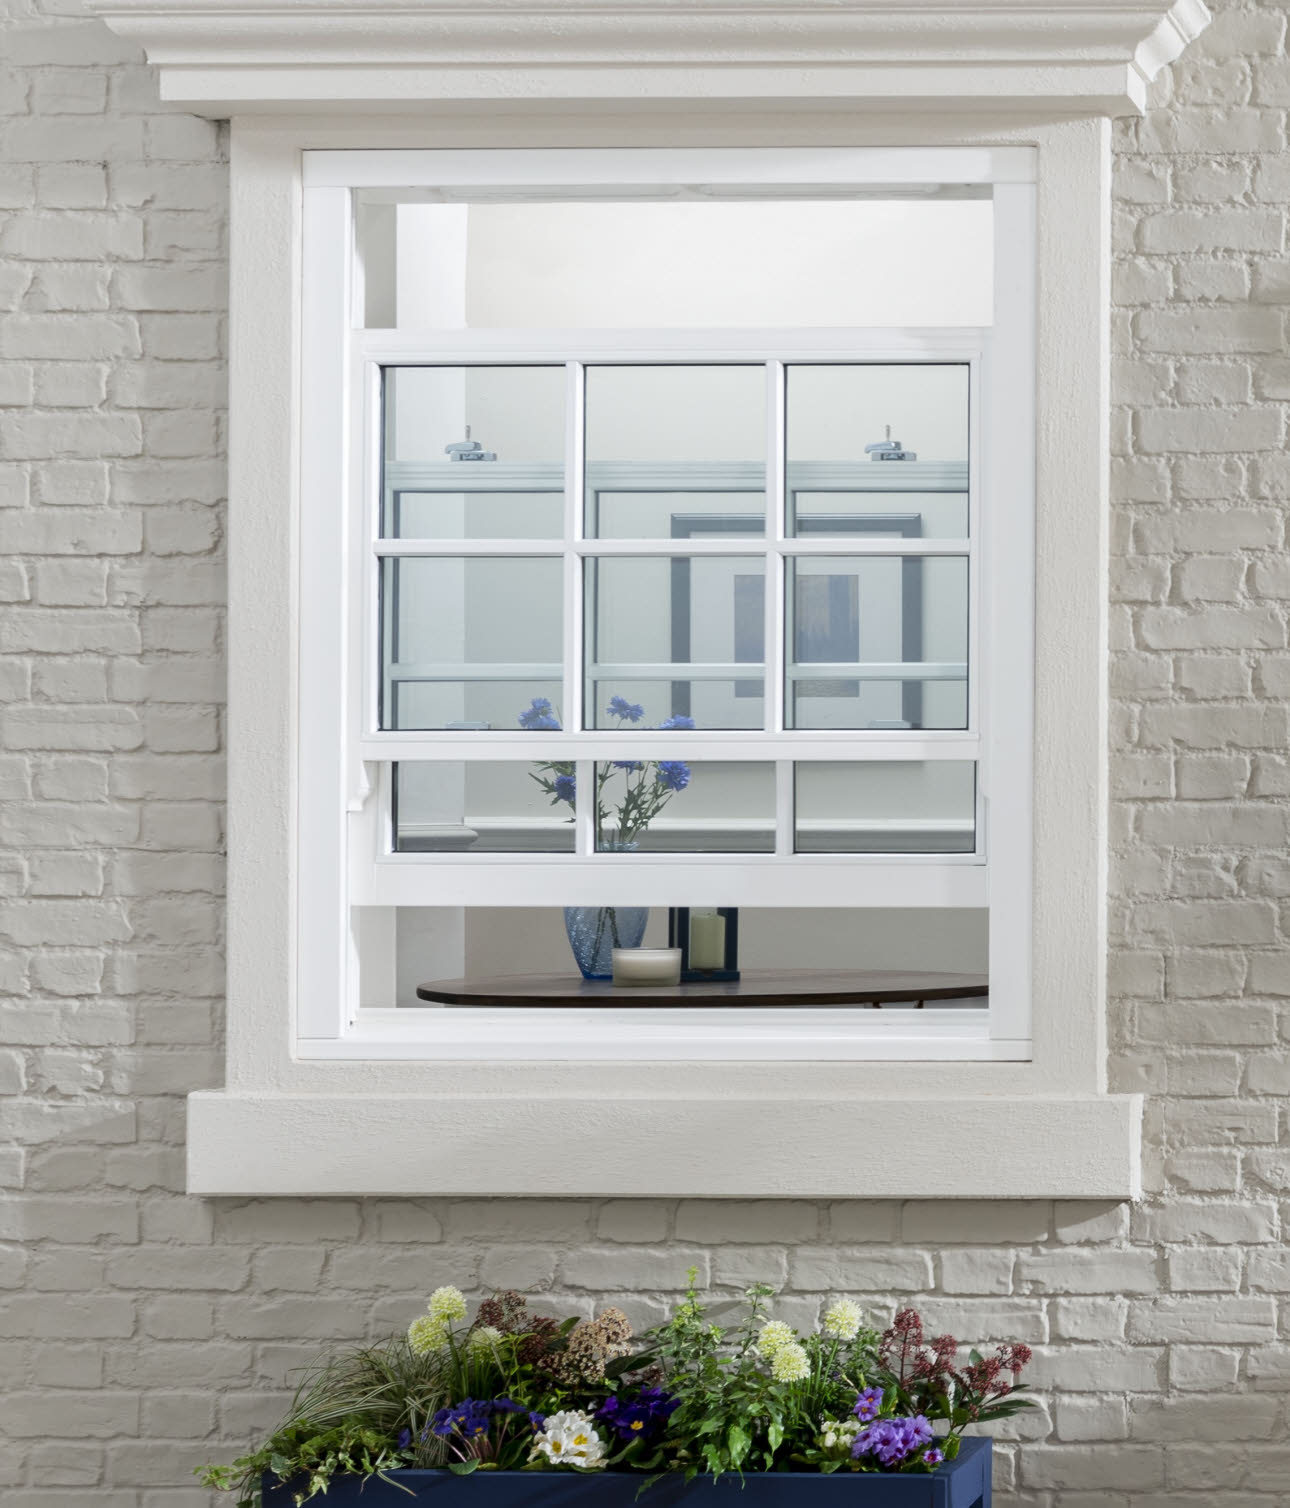 JELD-WEN Sliding Sash all bar Timber Window